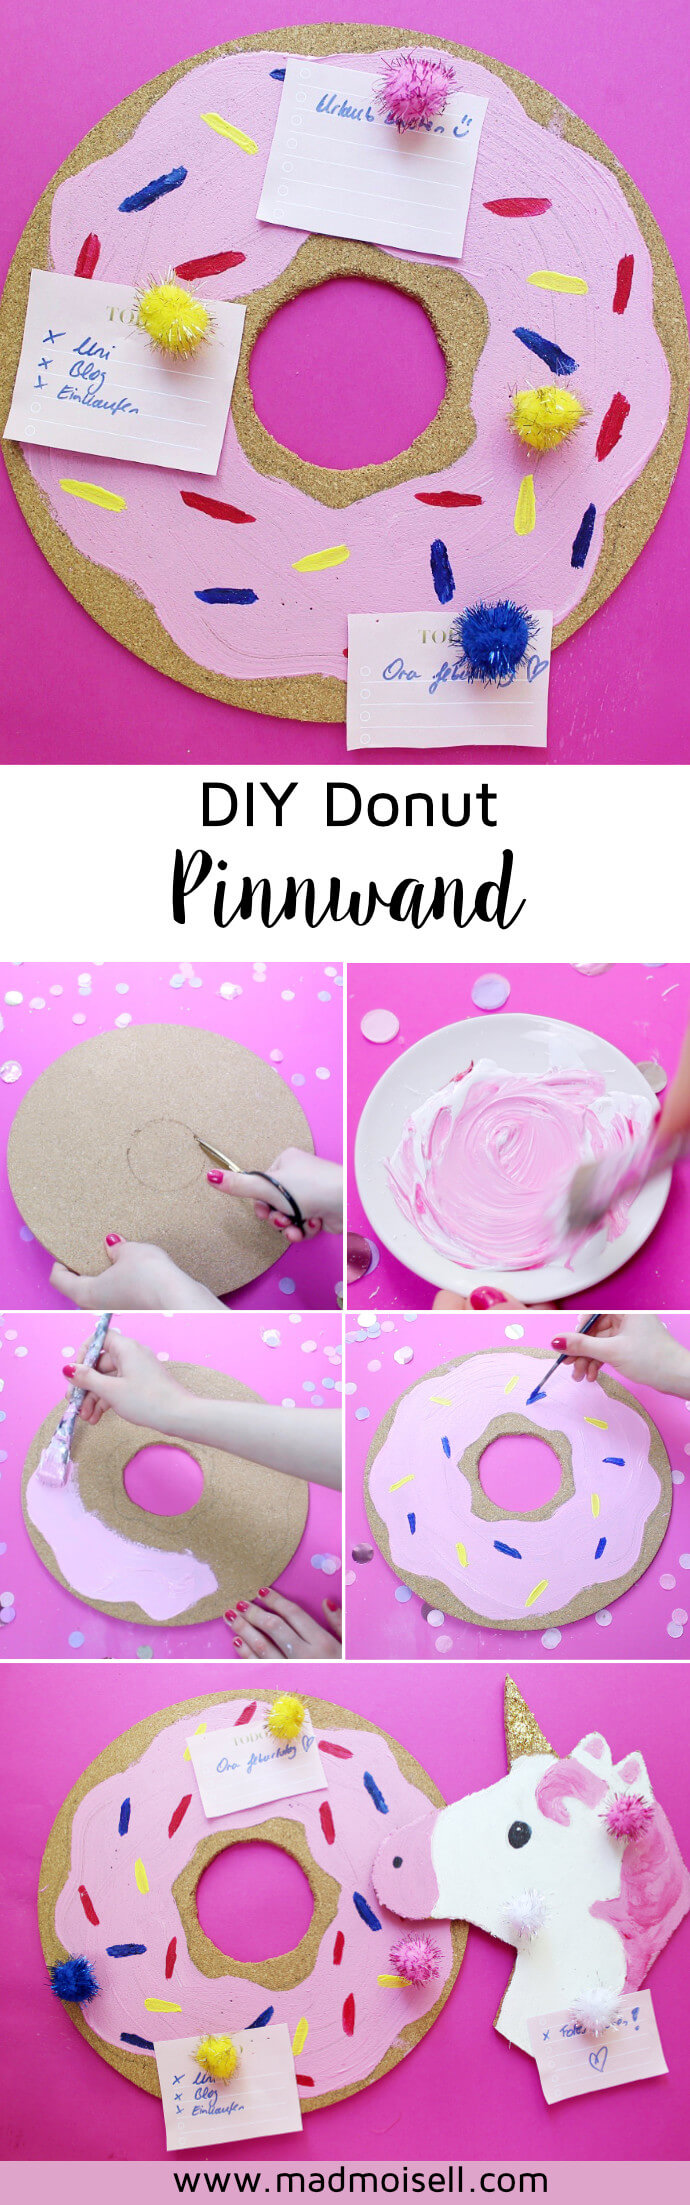 diy donut einhorn notizwand pinnwand kork selber machen basteln. Black Bedroom Furniture Sets. Home Design Ideas